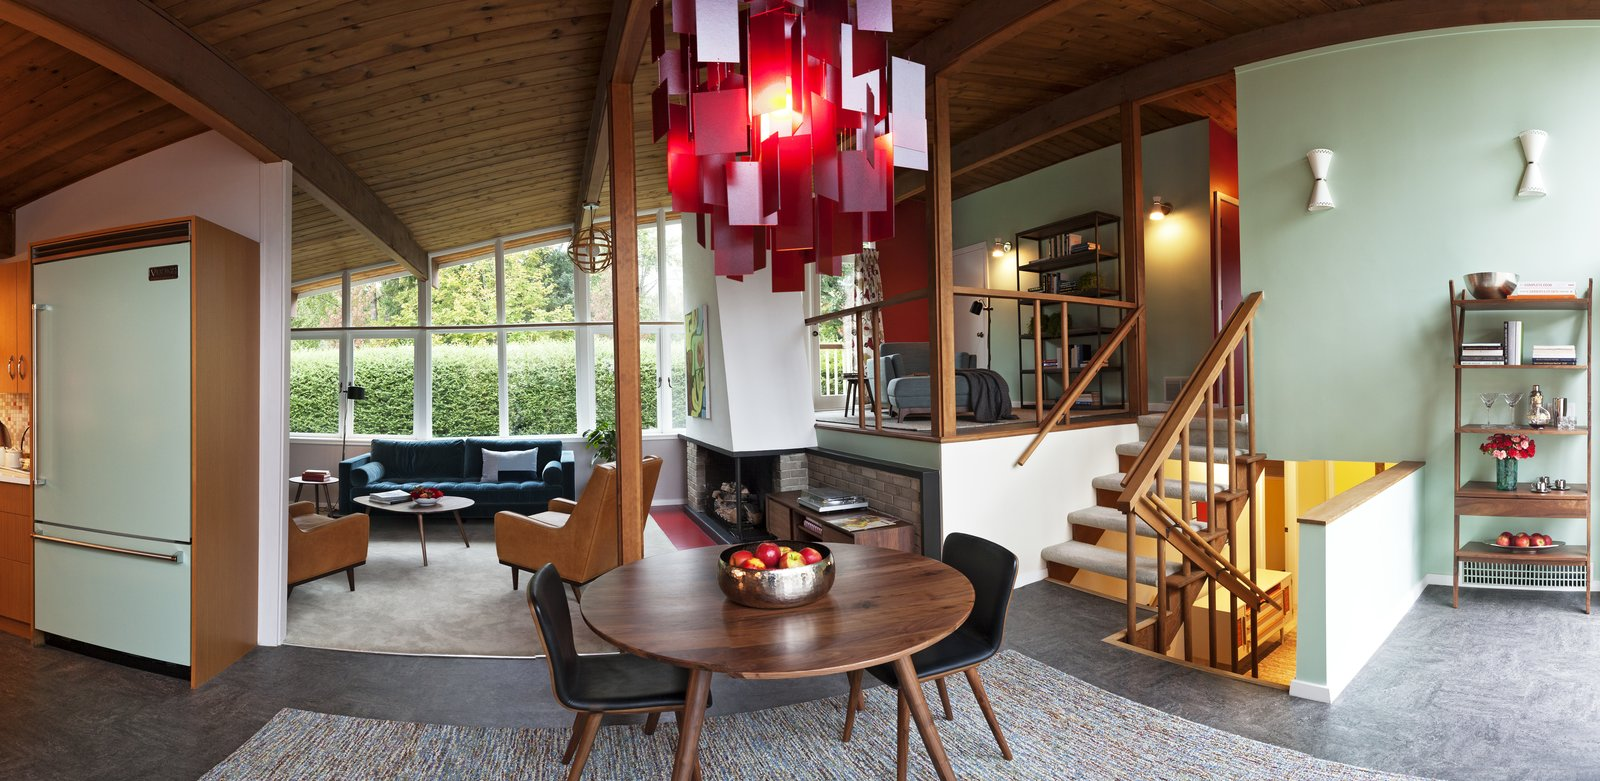 Natural cedar planks on the ceiling and posts throughout the main floor create direction for the eye and further evoke the interplay of the indoors and outdoors in the classic mid-century style of the home.  Photo 5 of 7 in Styling a Rescued Mid-Century Gem